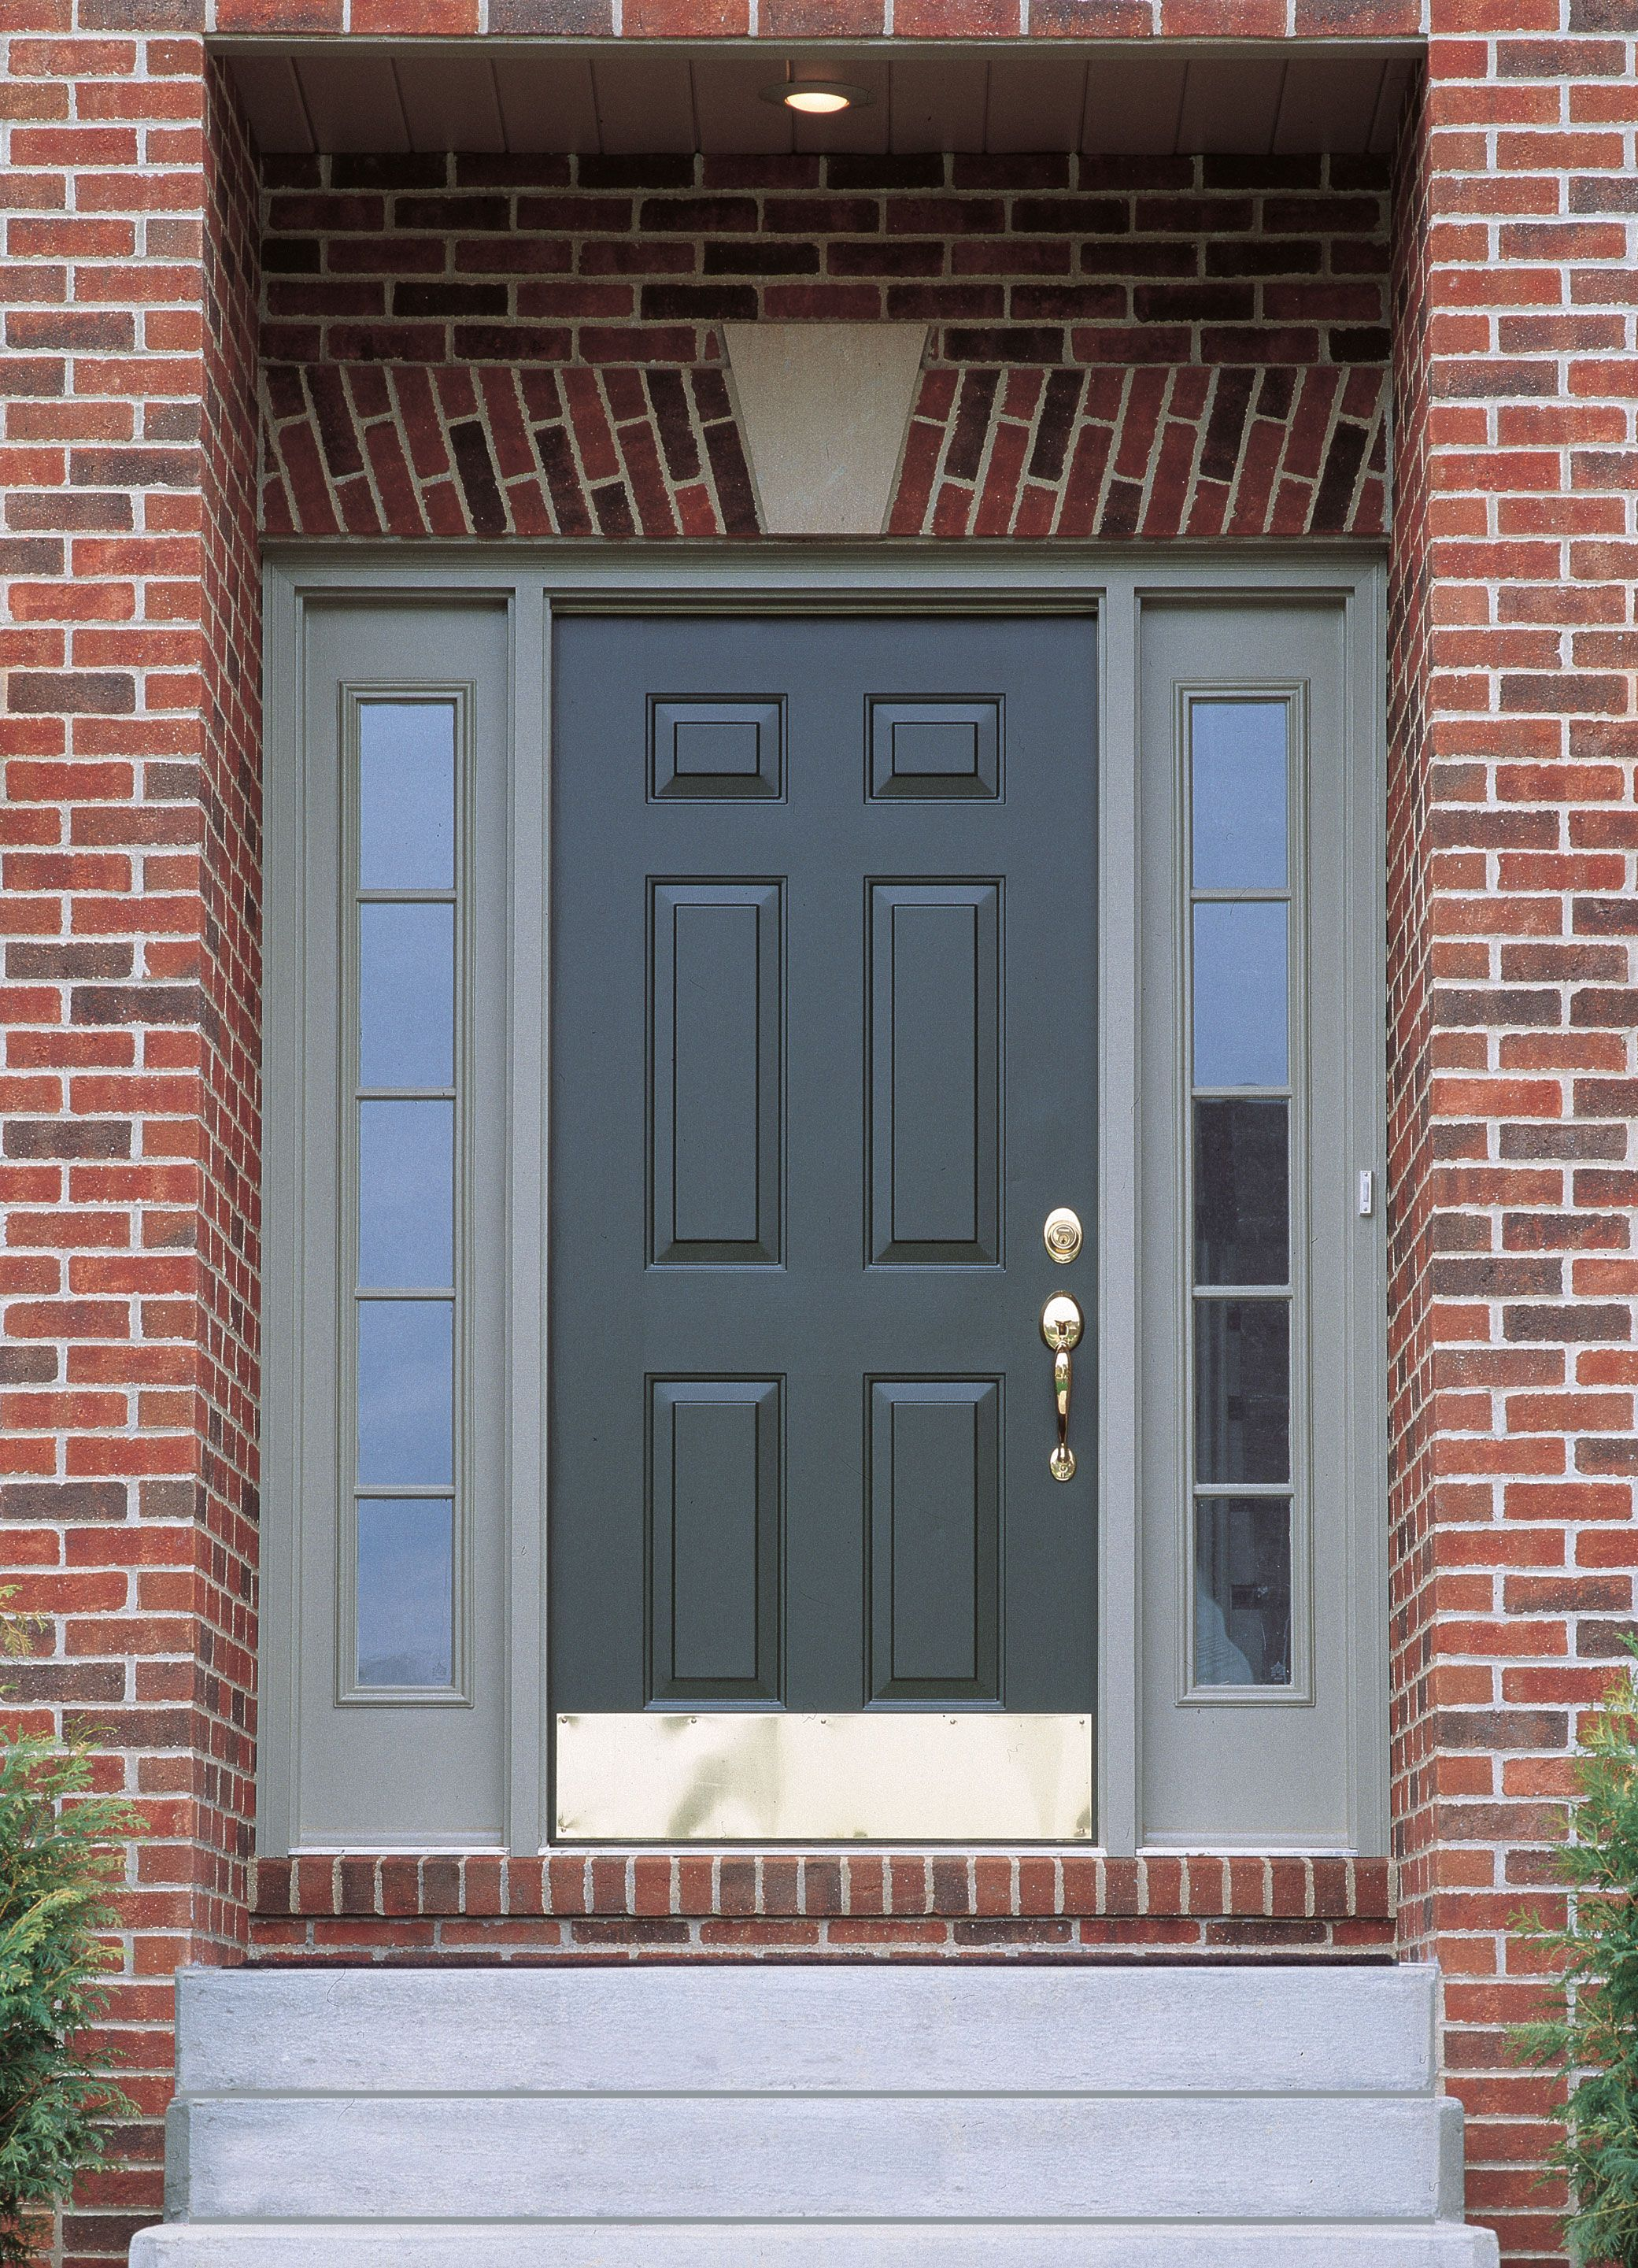 Accessorize your front door while increasing its durability with a